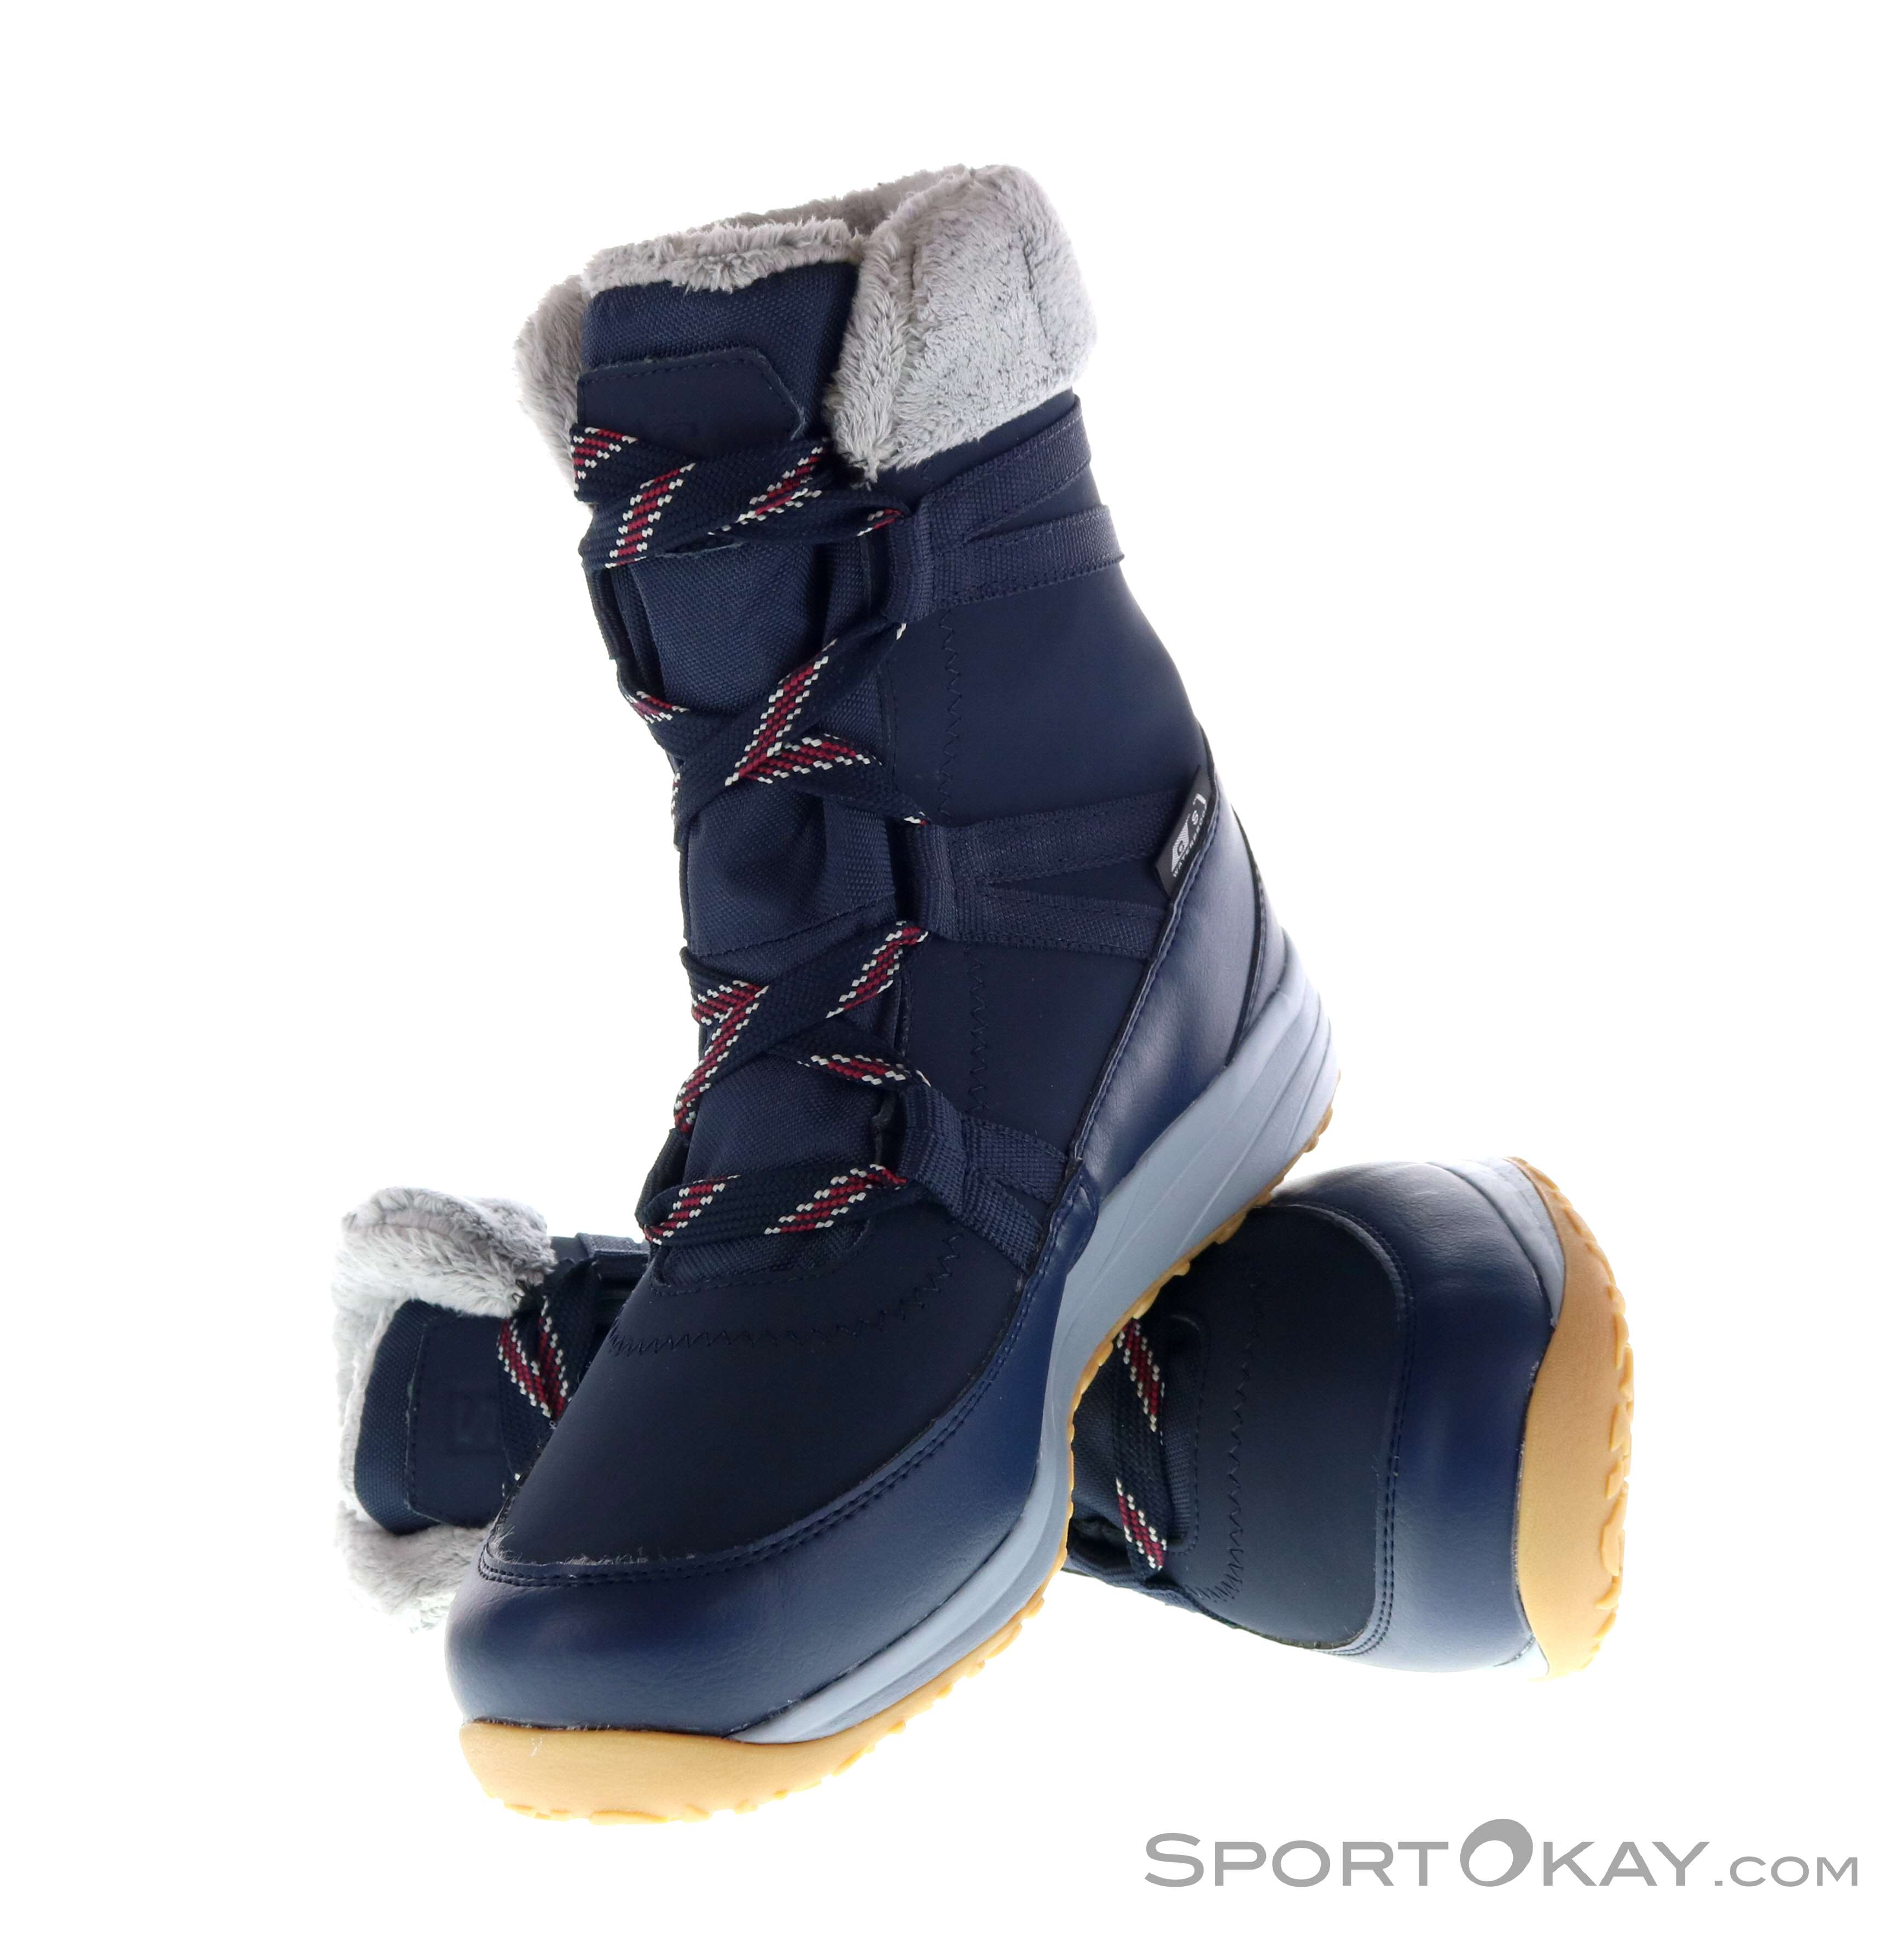 Salomon Heika LTR CSWP Womens Winter Shoes Winter Shoes